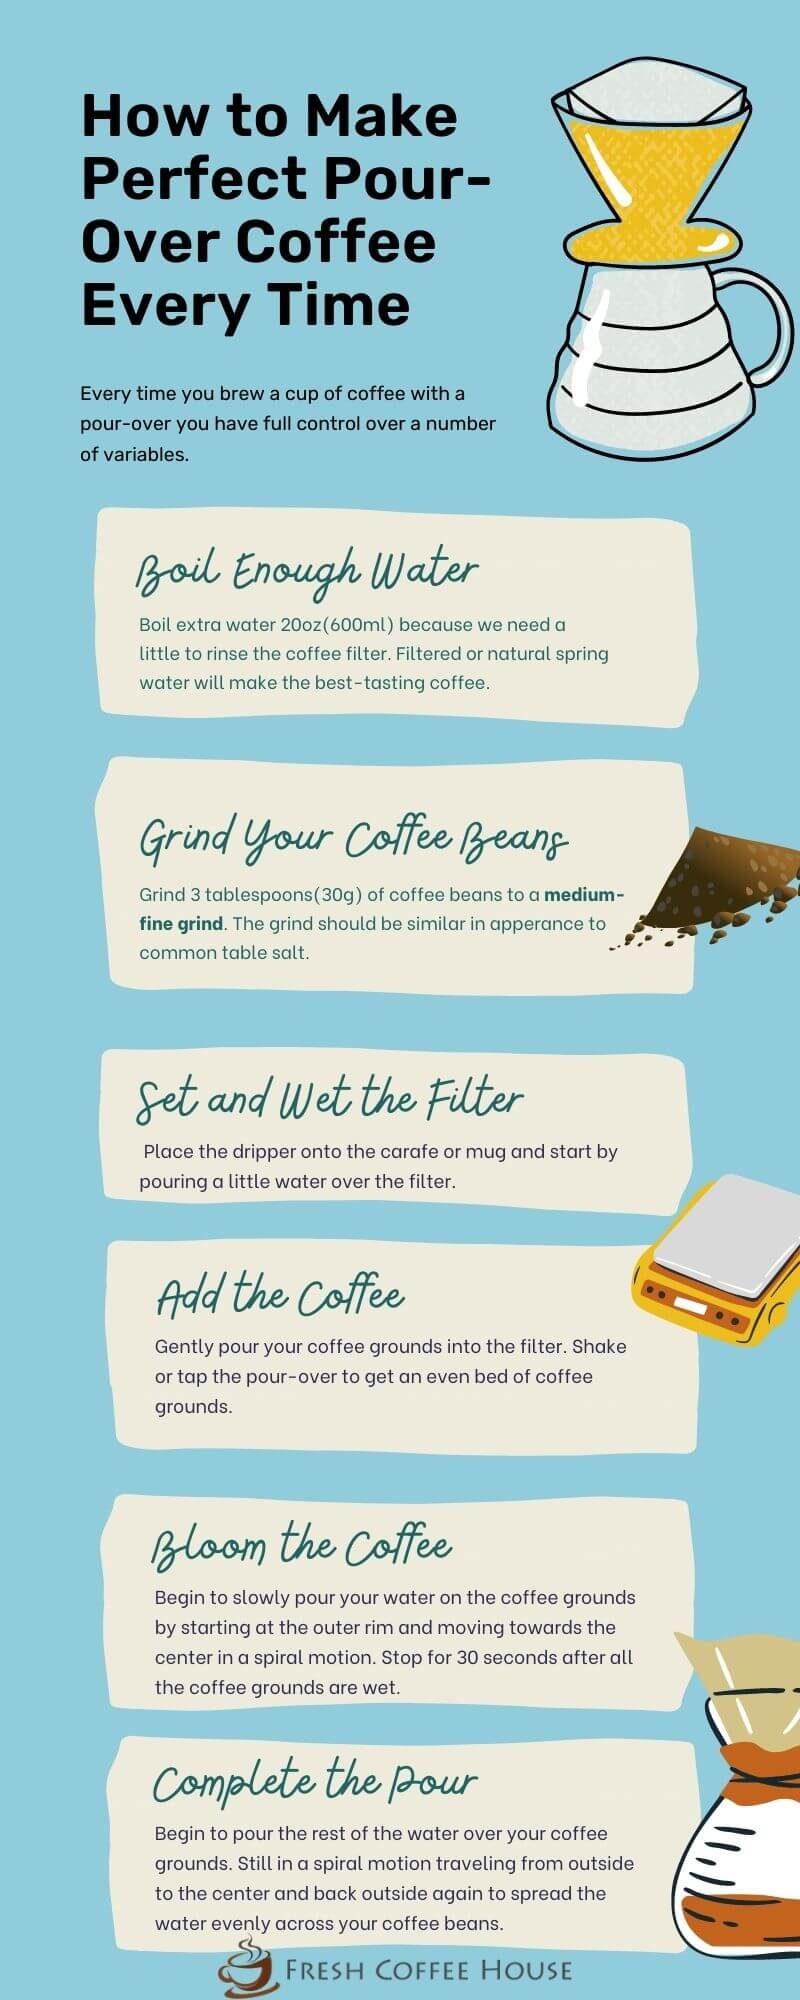 _Perfect Pour-Over Coffee Every Time Infographic3 (1)